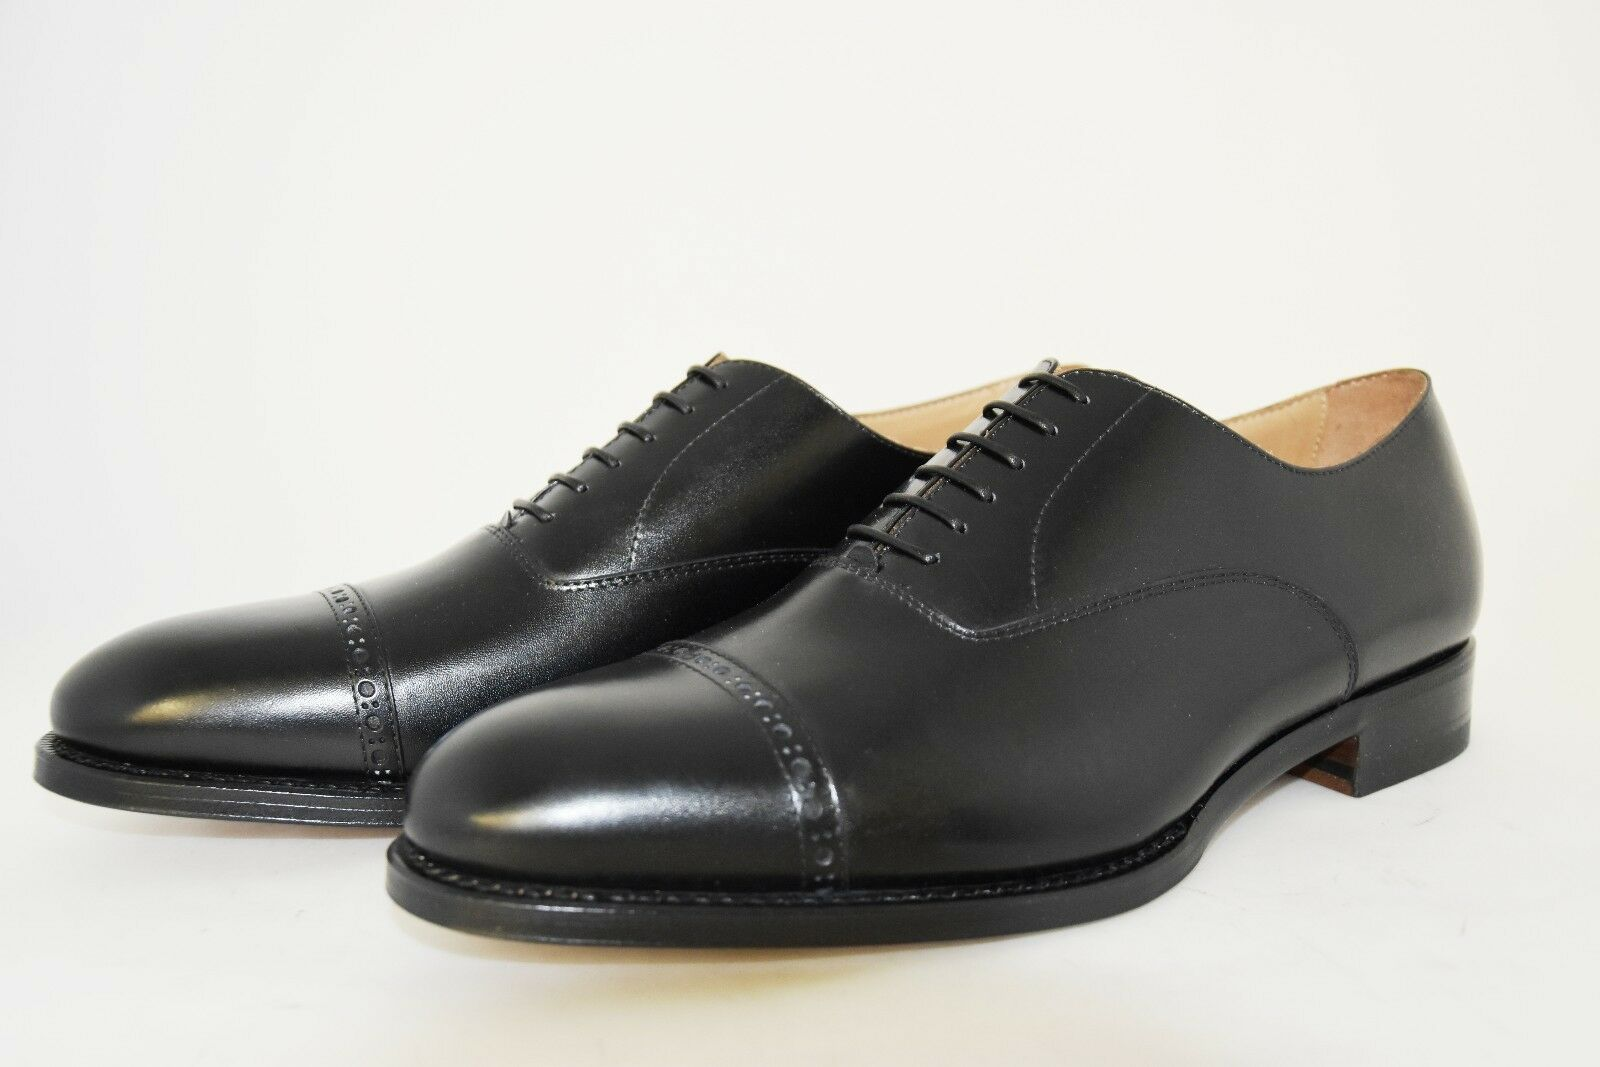 a prezzi accessibili MAN-8eu-9us-OXFORD-FRANCESINA-nero MAN-8eu-9us-OXFORD-FRANCESINA-nero MAN-8eu-9us-OXFORD-FRANCESINA-nero CALF-VITELLO NERO-LEATHER SOLE-SUOLA CUOIO  il più economico